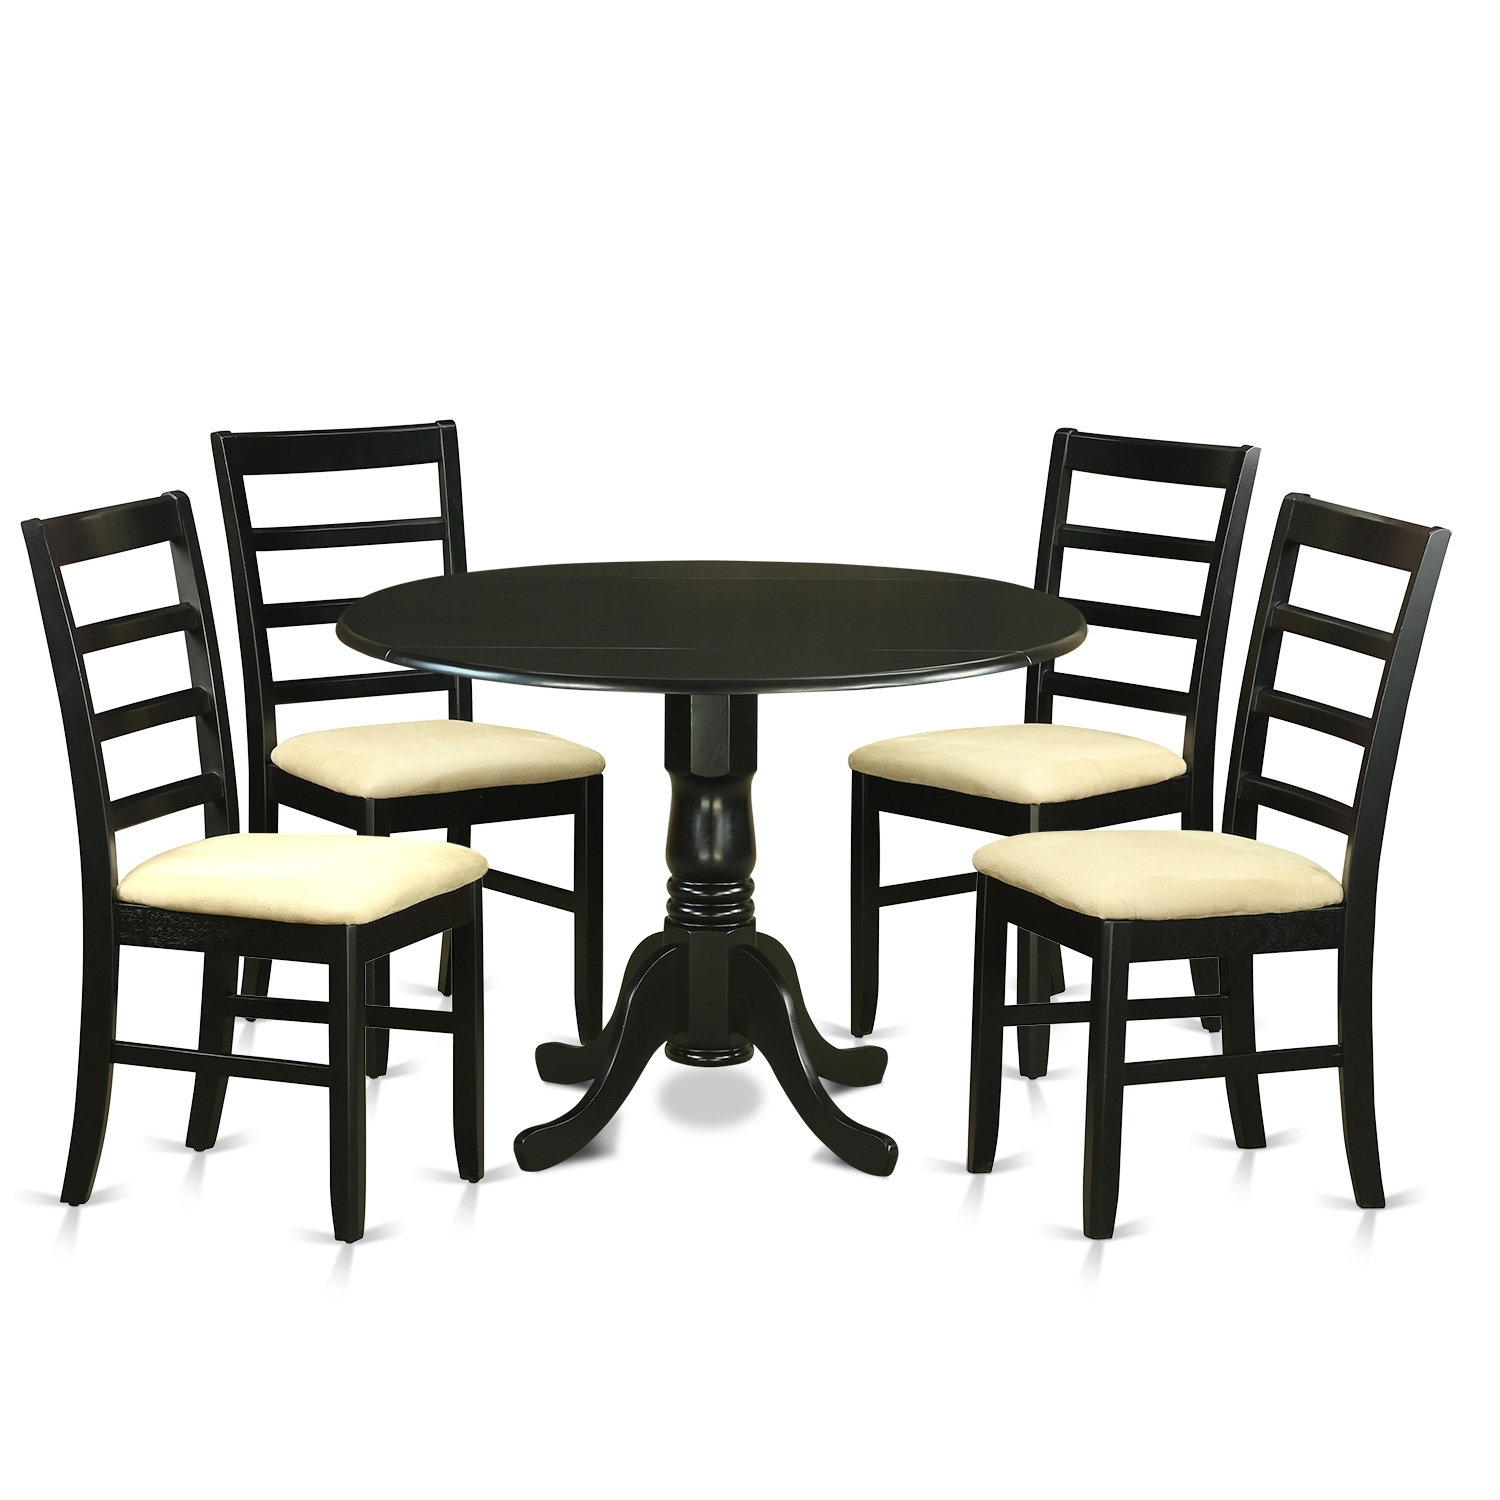 Wooden Importers Dublin 5 Piece Dining Set | Wayfair Regarding 2018 Caira Black 5 Piece Round Dining Sets With Upholstered Side Chairs (Image 20 of 20)